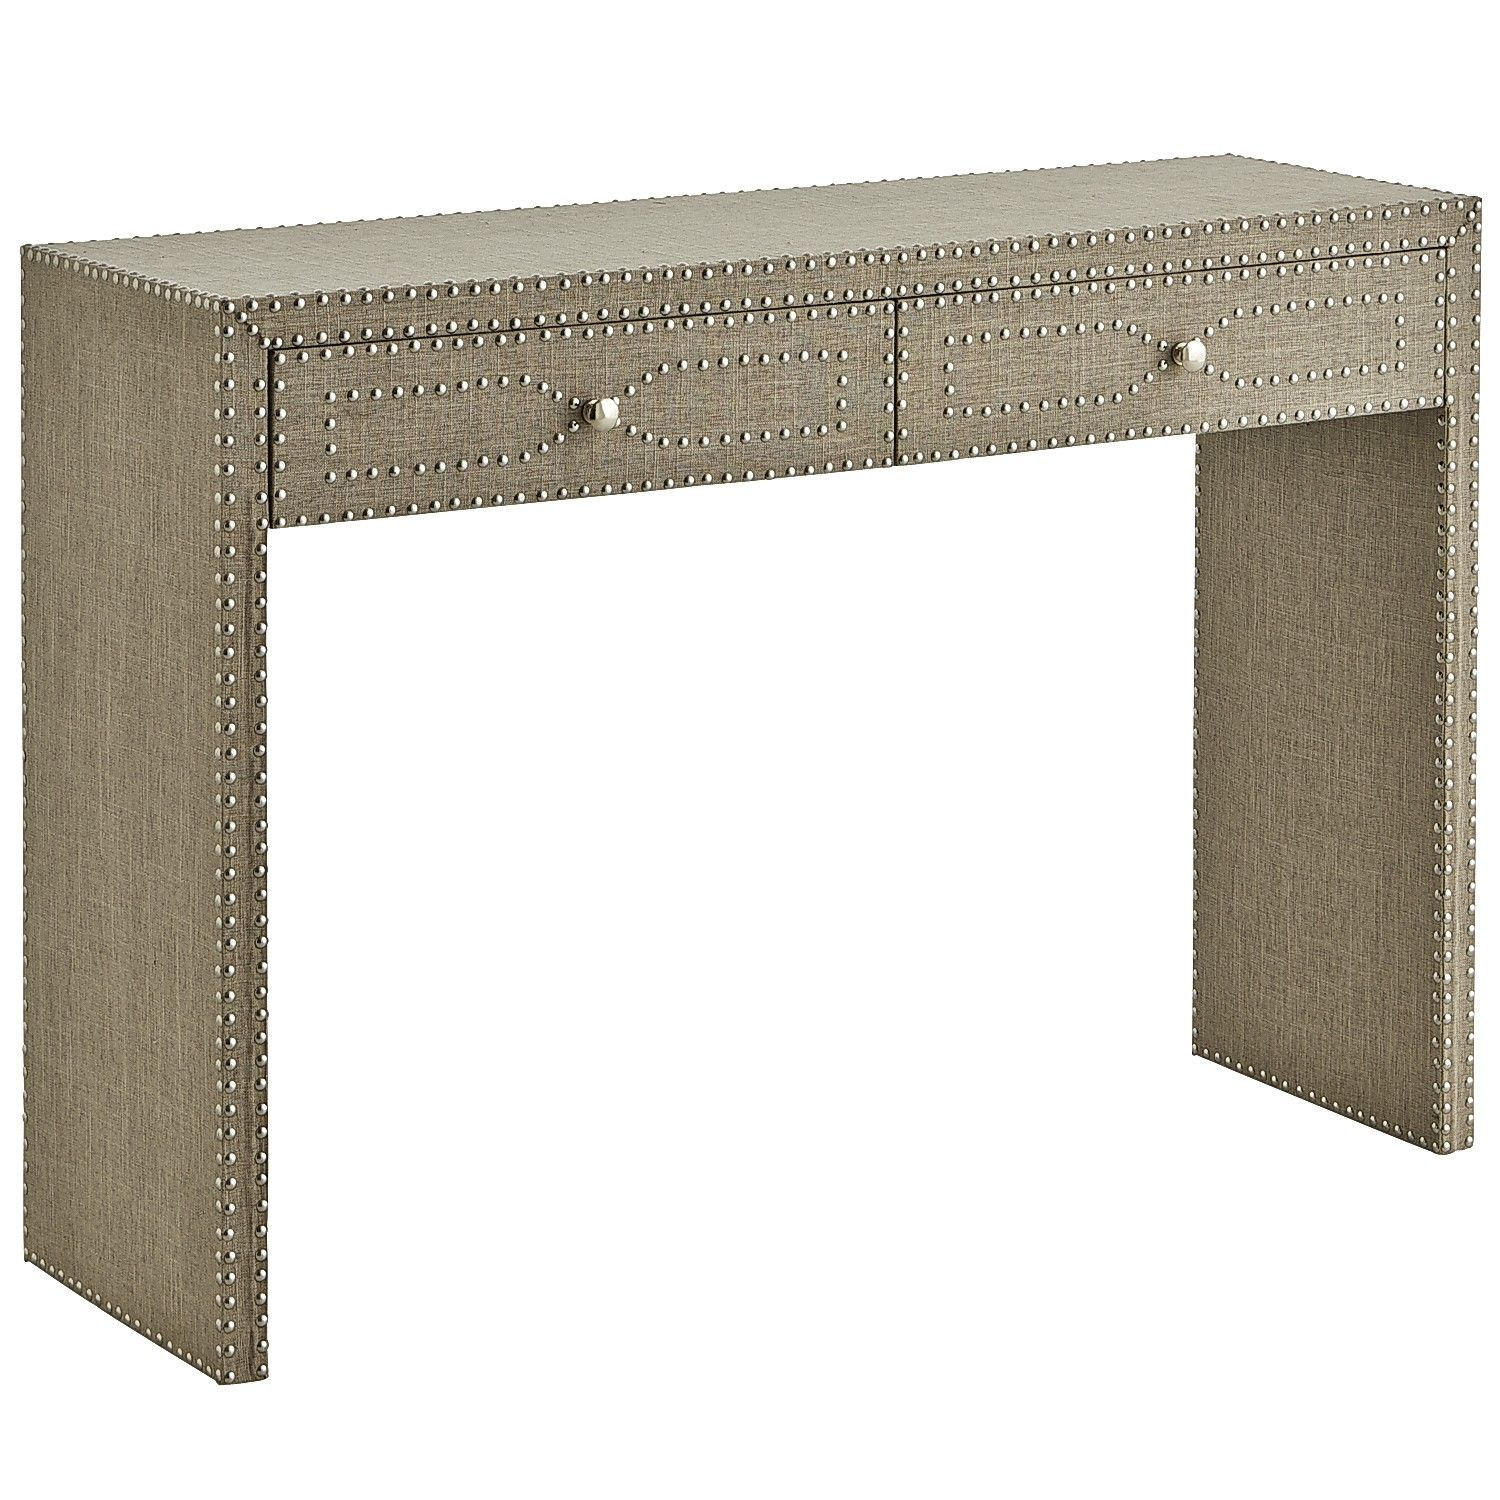 Lexford Console Table - not certain about all the railheads but it ...